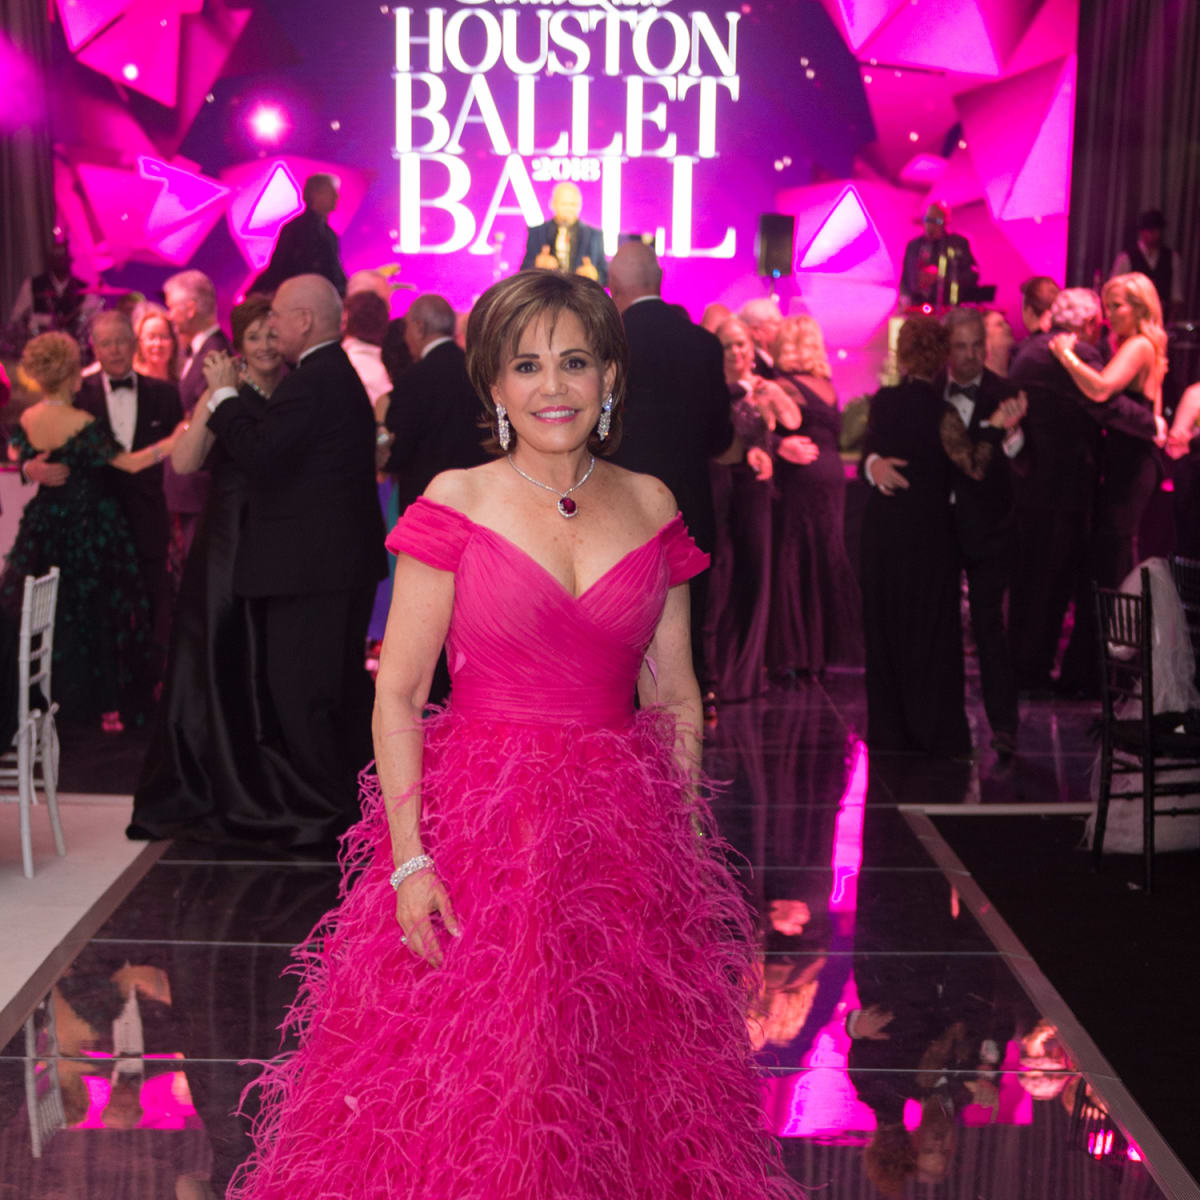 Houston, Ballet Ball, February 2018, Hallie Vanderhider